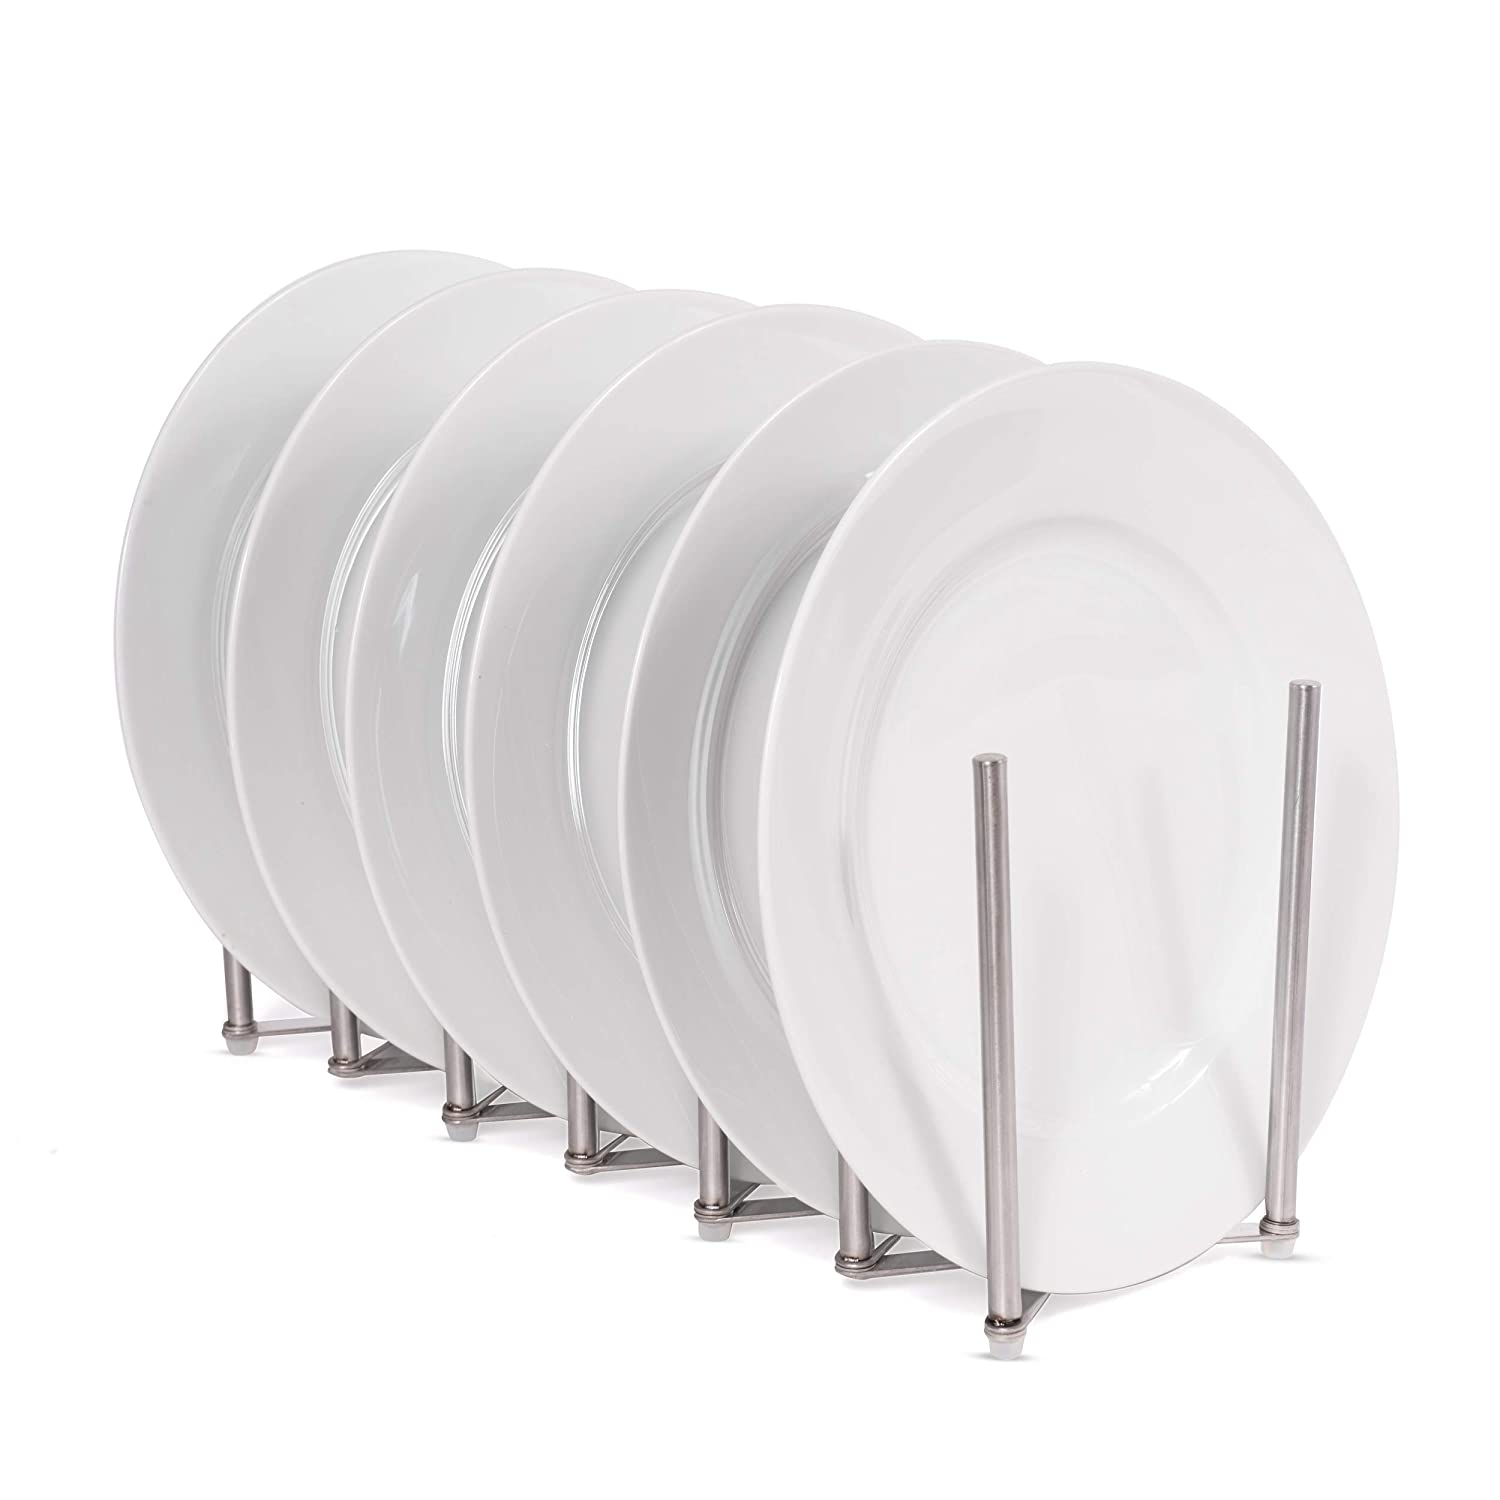 Can Be Extended to 24 Can Be Extended to 24 COMIN16JU034290 6 Sectional Adjustable Length Accordion Style brightmaison Kitchen Pot Lid Plate Holder Rack Stainless Steel